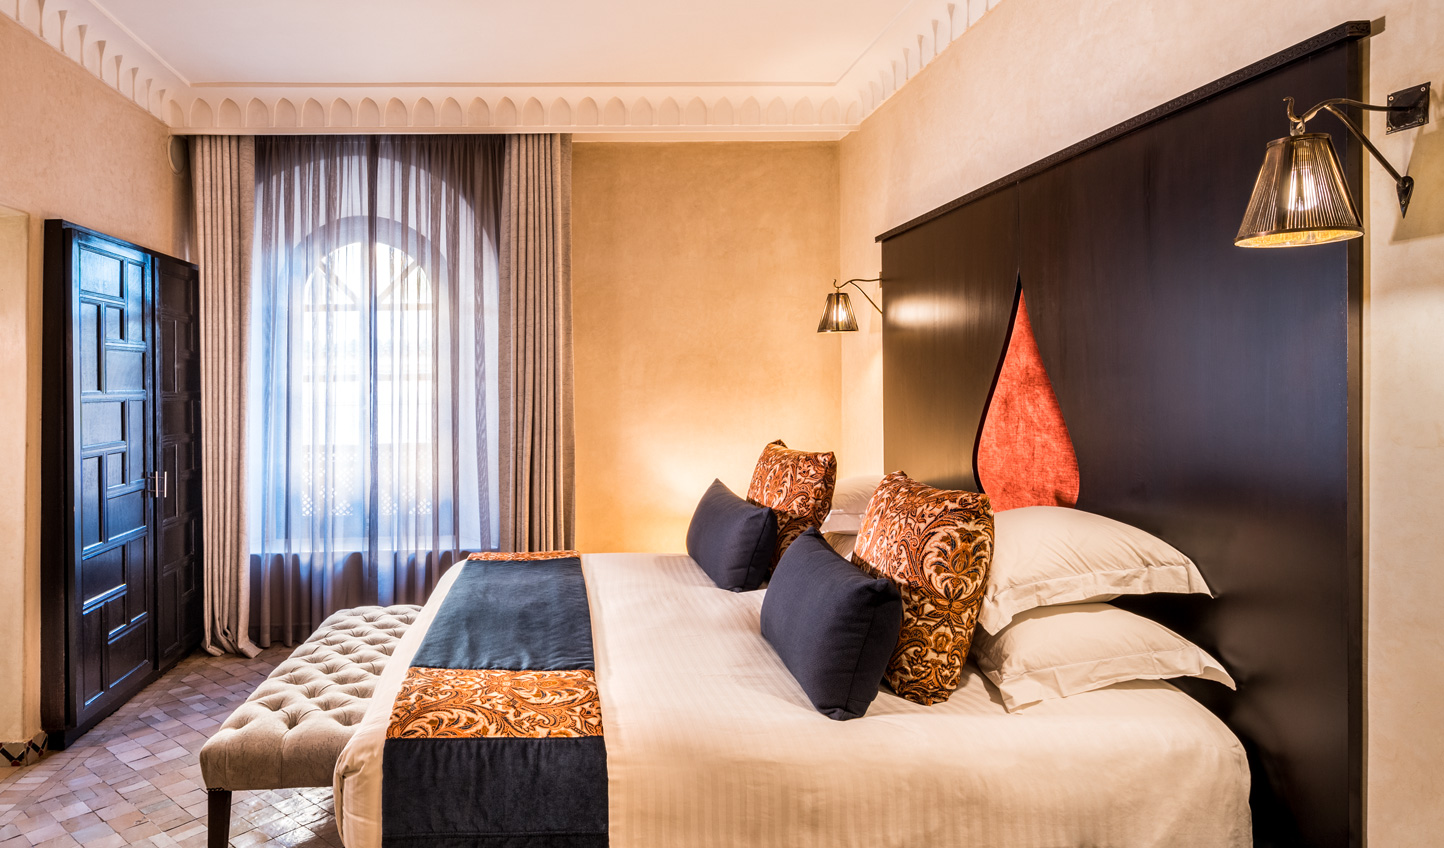 Traditional design is given a modern update in the guestrooms at Riad Fes